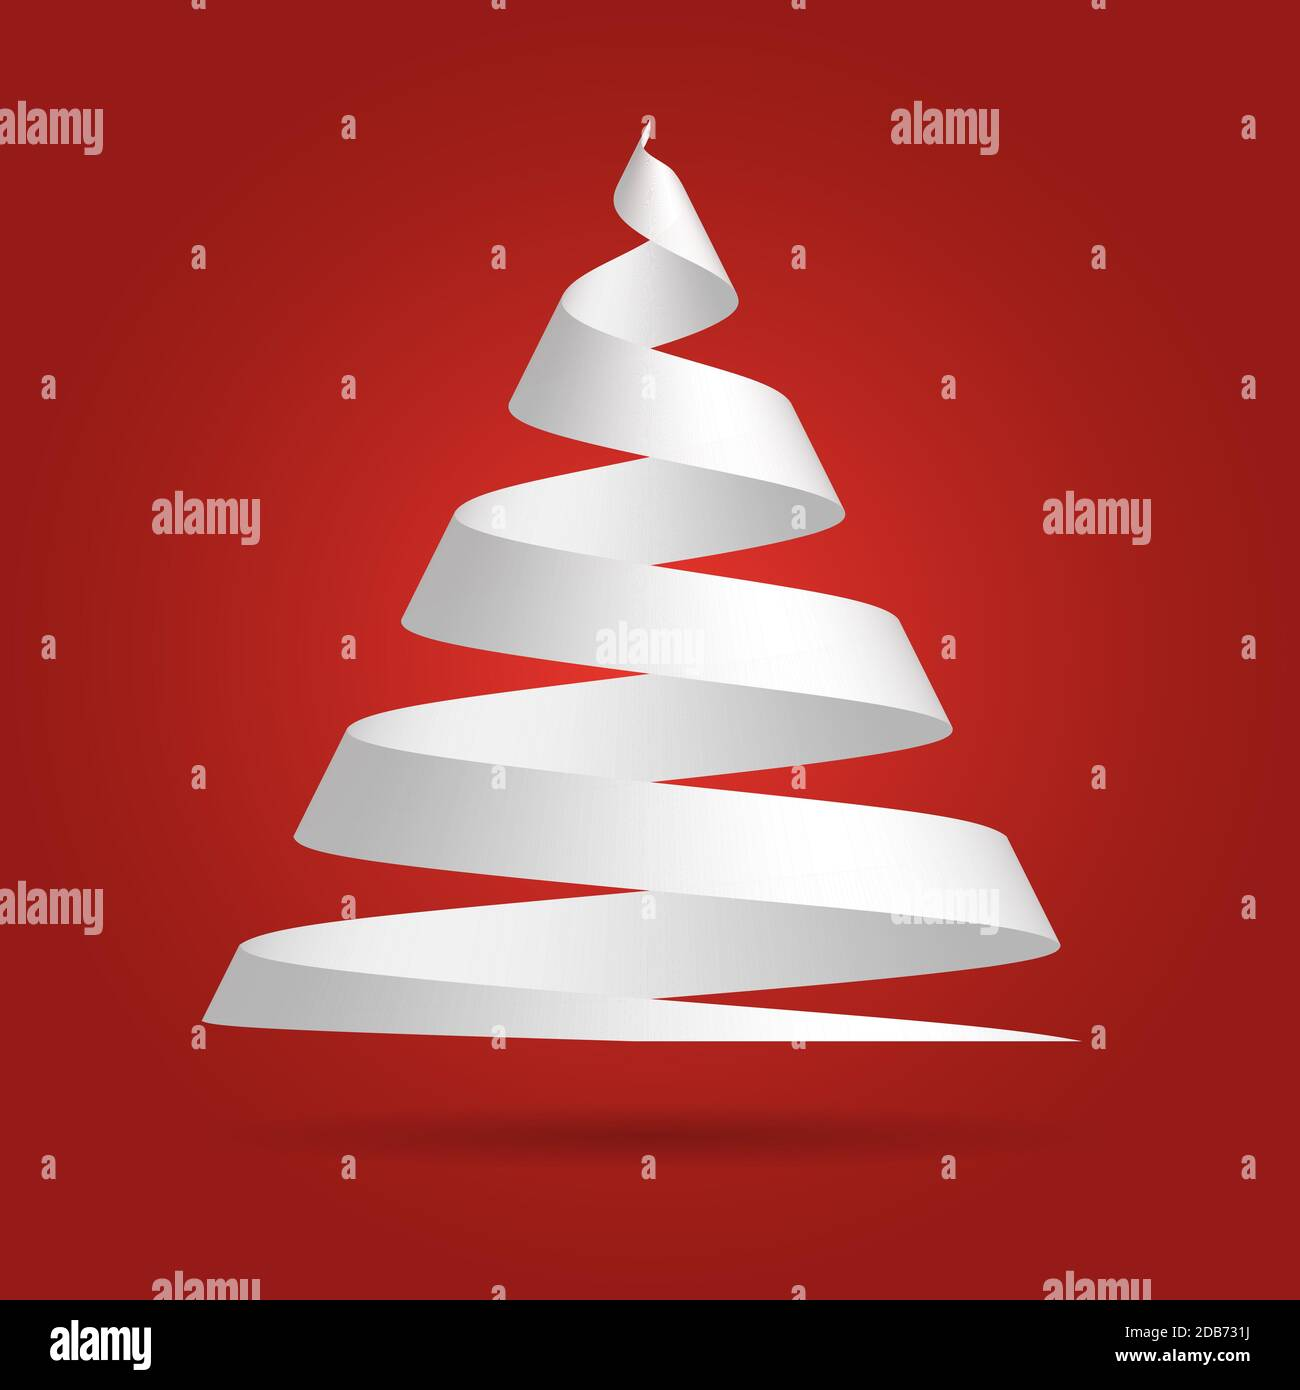 Simple Red Paper Ribbon Folded In A Shape Of Christmas Tree Merry Christmas Theme 3d Vector Illustration With Dropped Shadow And Red Gradient Background Stock Vector Image Art Alamy